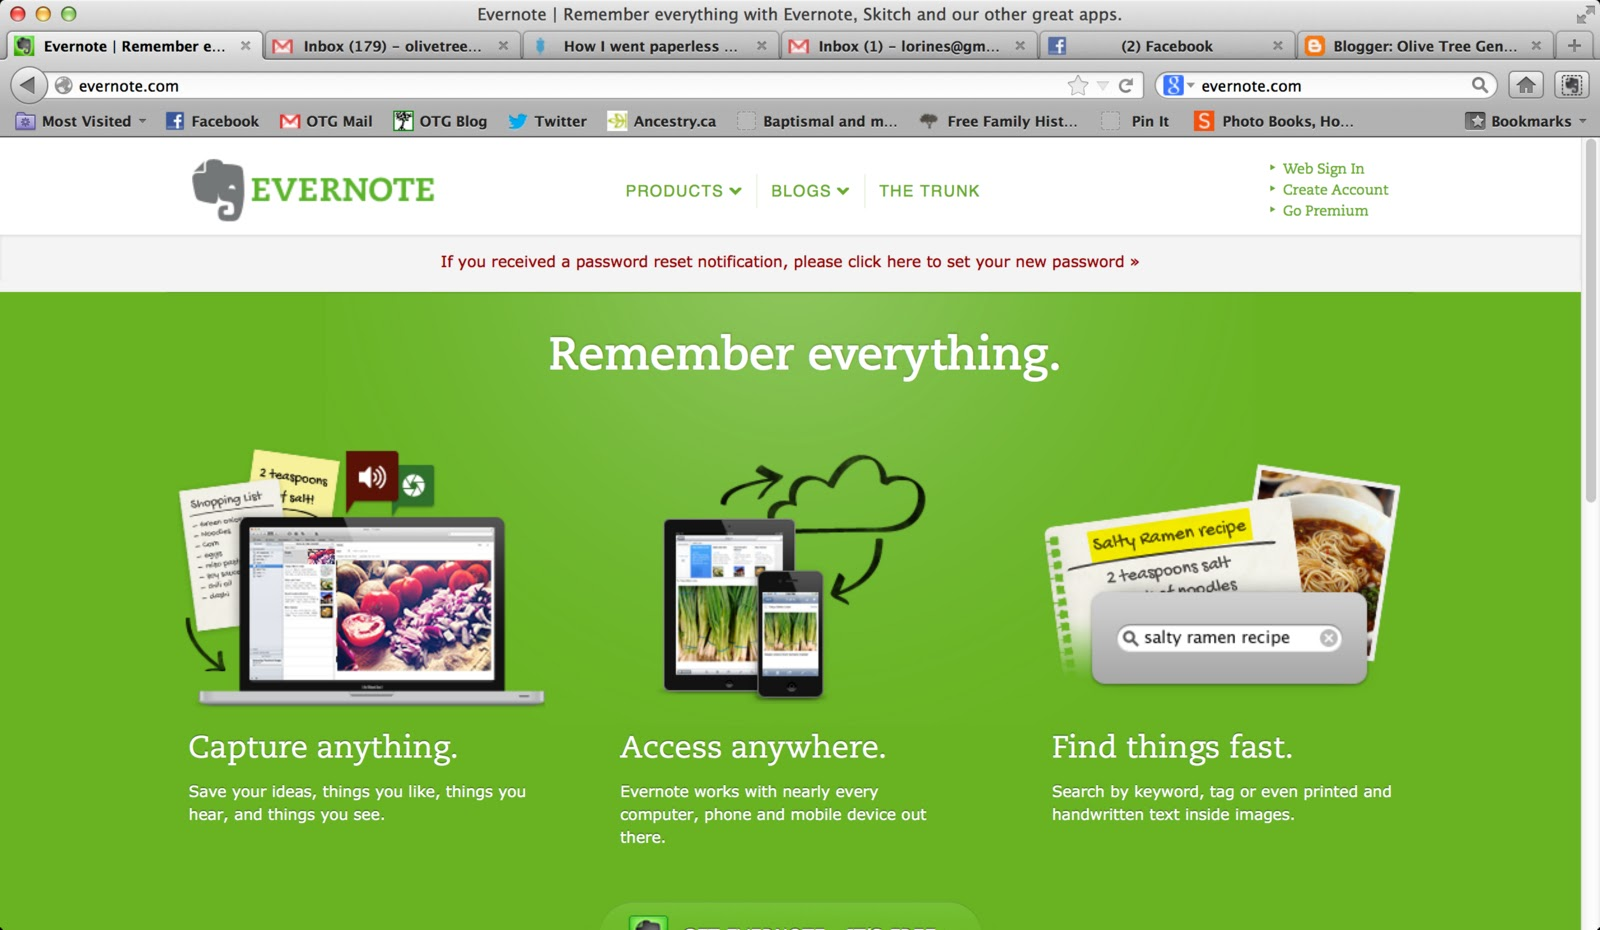 Evernote Hacked: 50 million user passwords reset